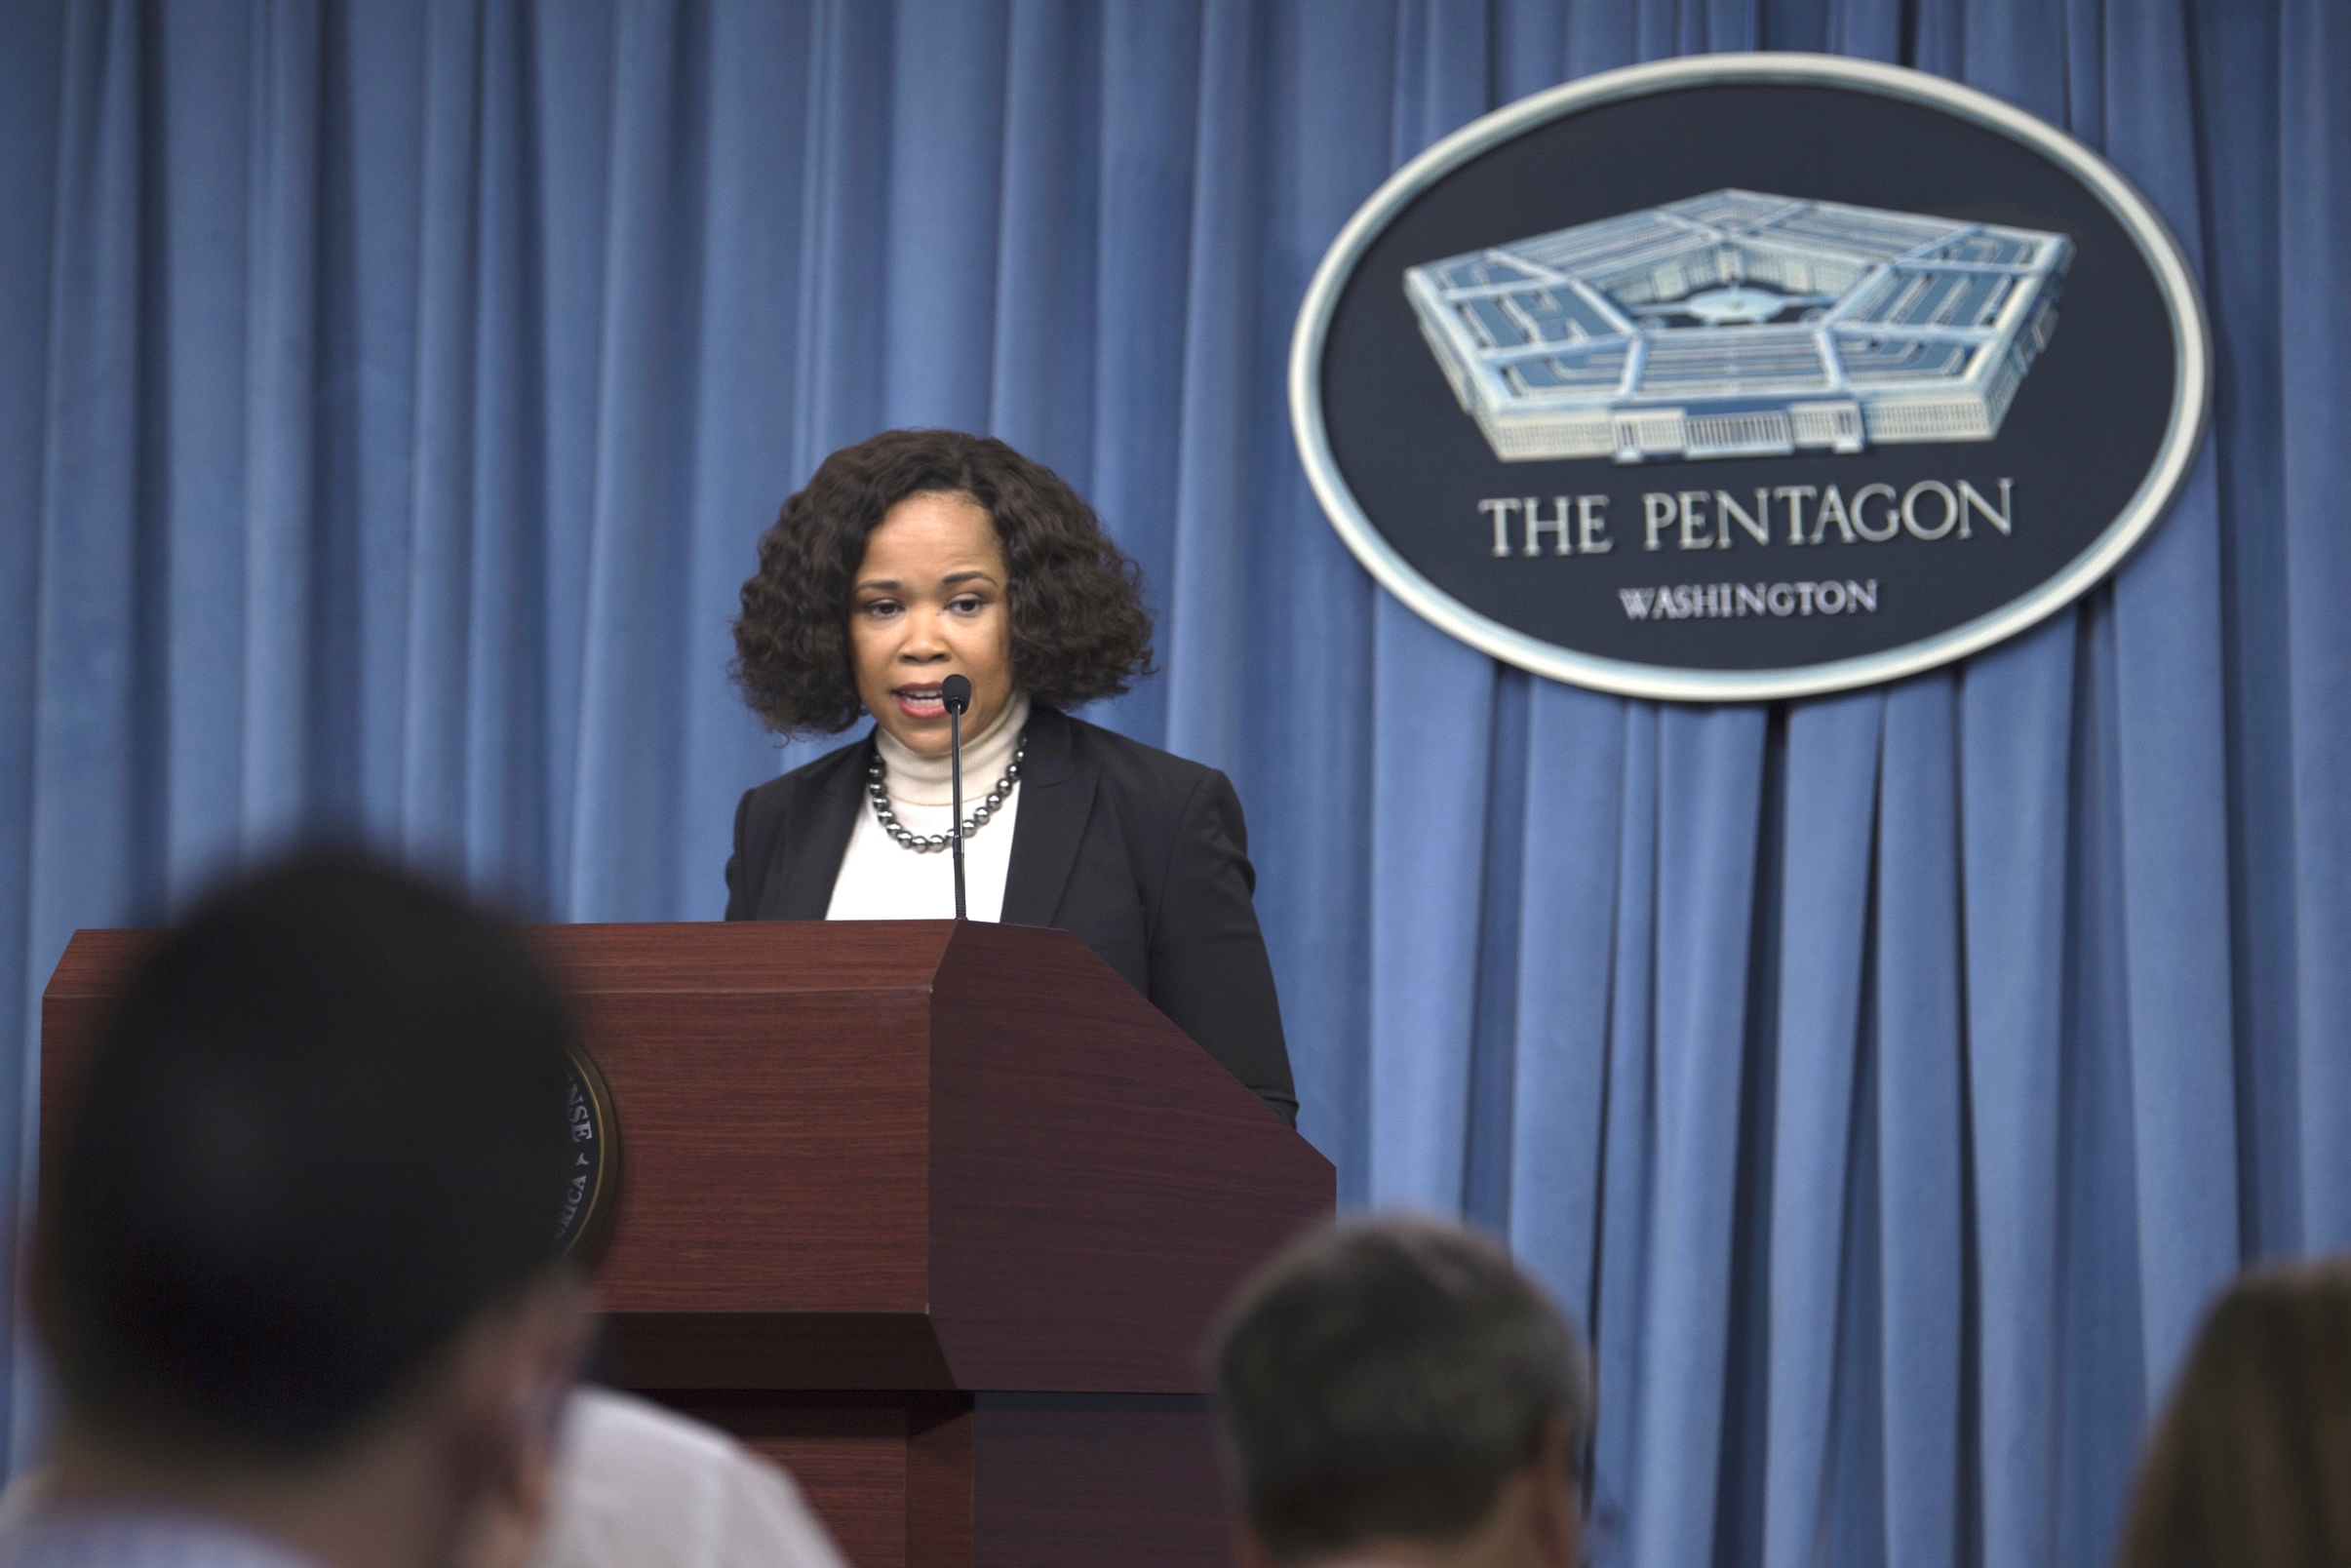 Dana White, the assistant to the secretary of defense for public affairs, briefs the press at the Pentagon in Washington, D.C., March 29, 2018. (DoD photo by Navy Mass Communication Specialist 1st Class Kathryn E. Holm)